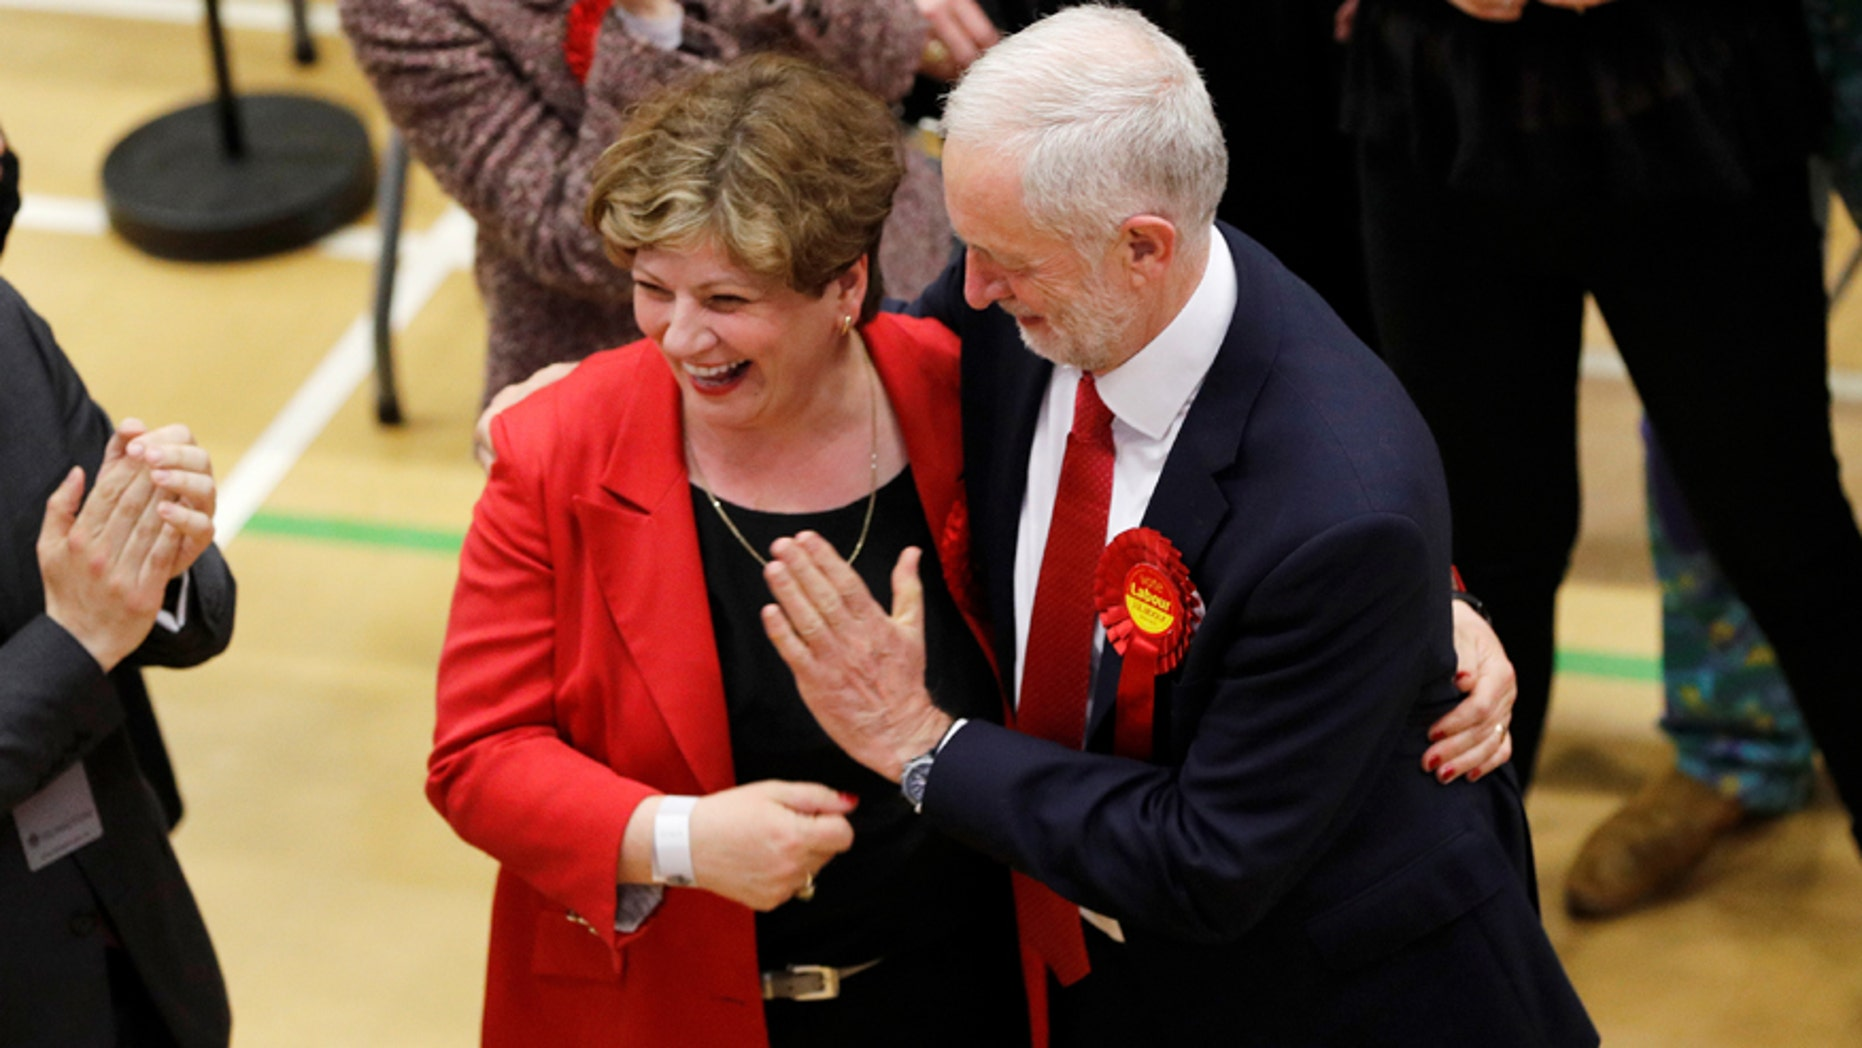 Jeremy Corbyn, leader of Britain's Labour Party tries to exchange a high five with Shadow Foreign Secretary Emily Thornberry at Britain's general election counting centre in Islington, London, June 9, 2017. REUTERS/Darren Staples - RTX39RN5